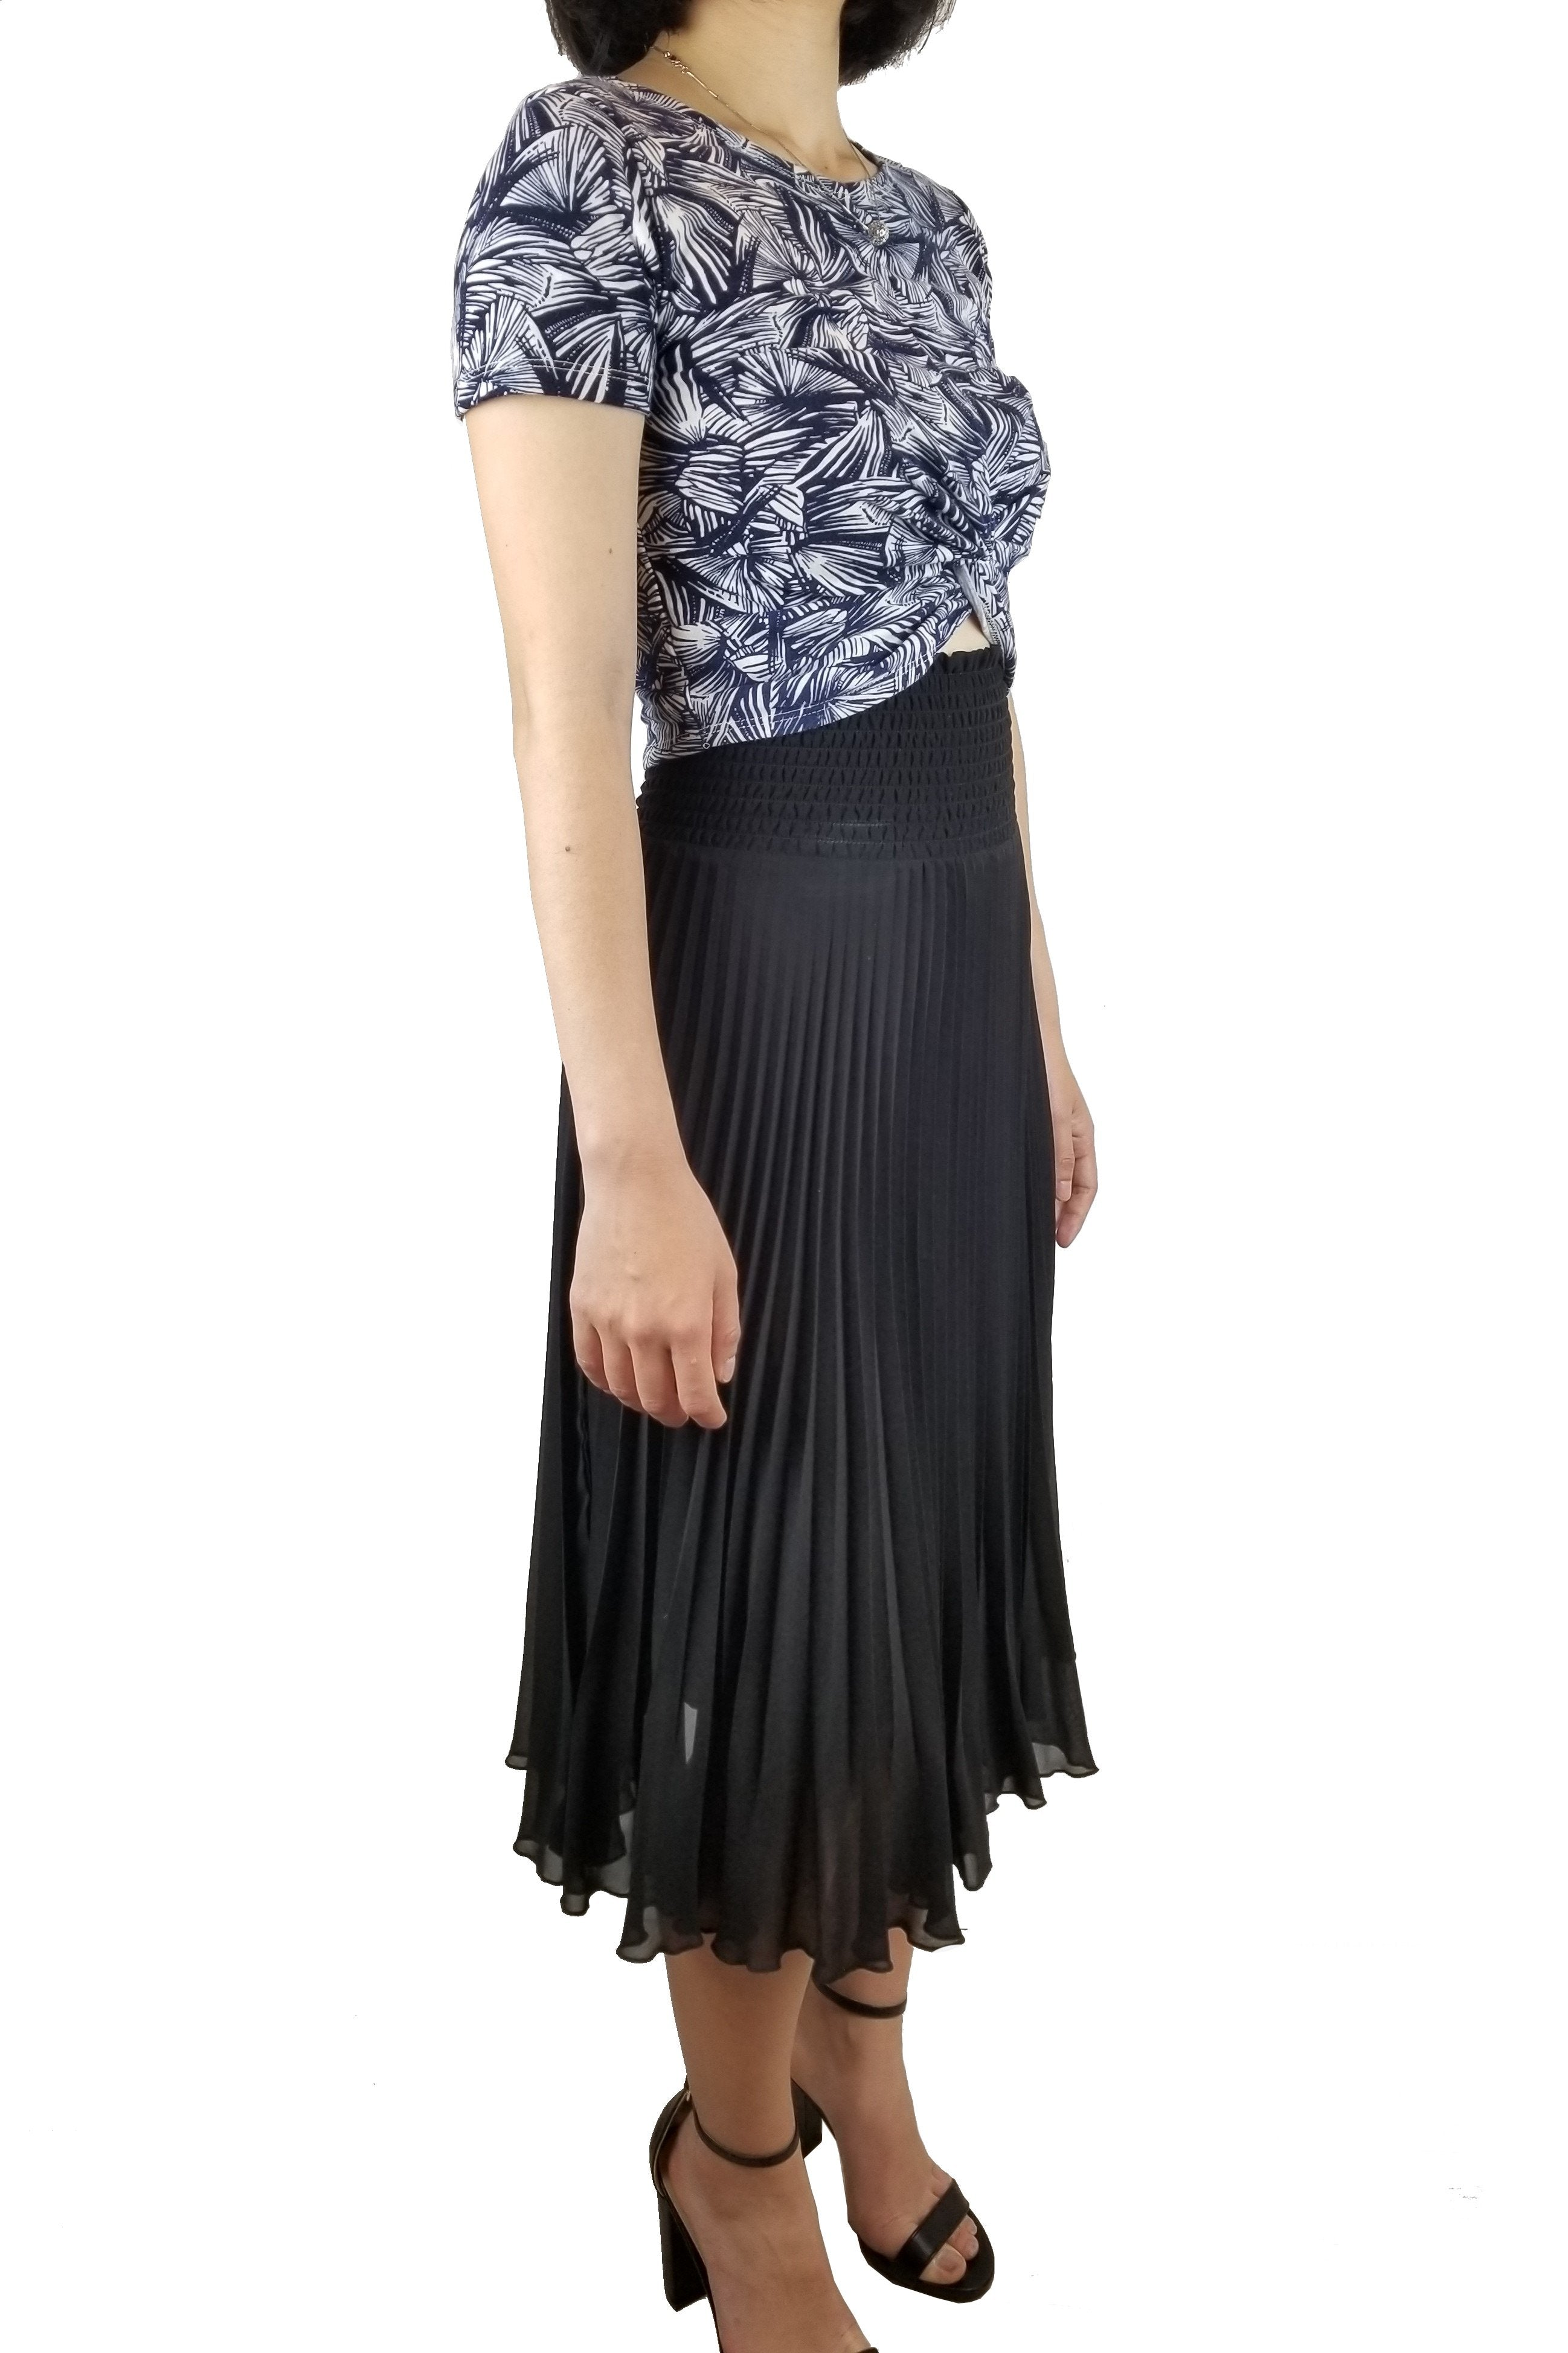 Wilfred Black Pleated Skirt, A line pleated skirt. High rise. Very soft material, Black, 100% Polyester, skirt, women's skirt, A-line skirt, pleated skirt